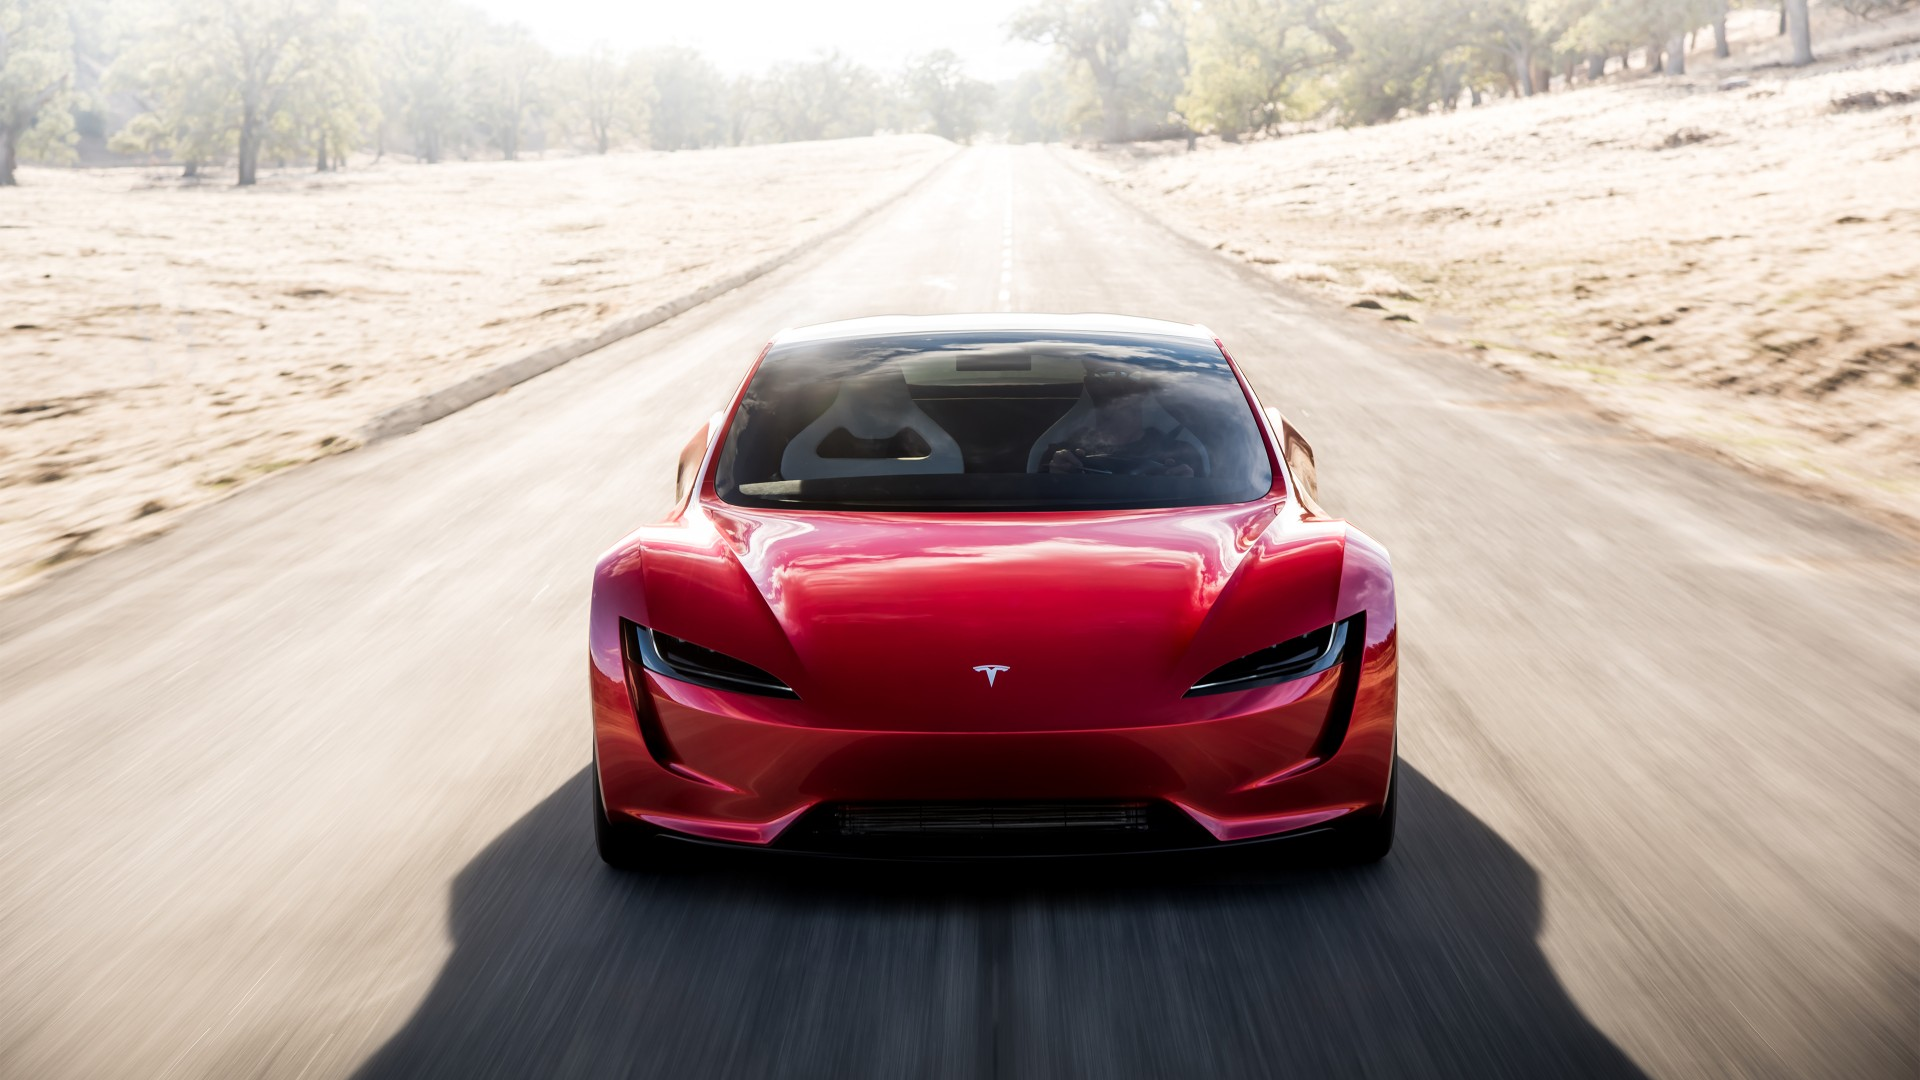 Ipad Mini Wallpaper Hd 2020 Tesla Roadster 4k 4 Wallpaper Hd Car Wallpapers